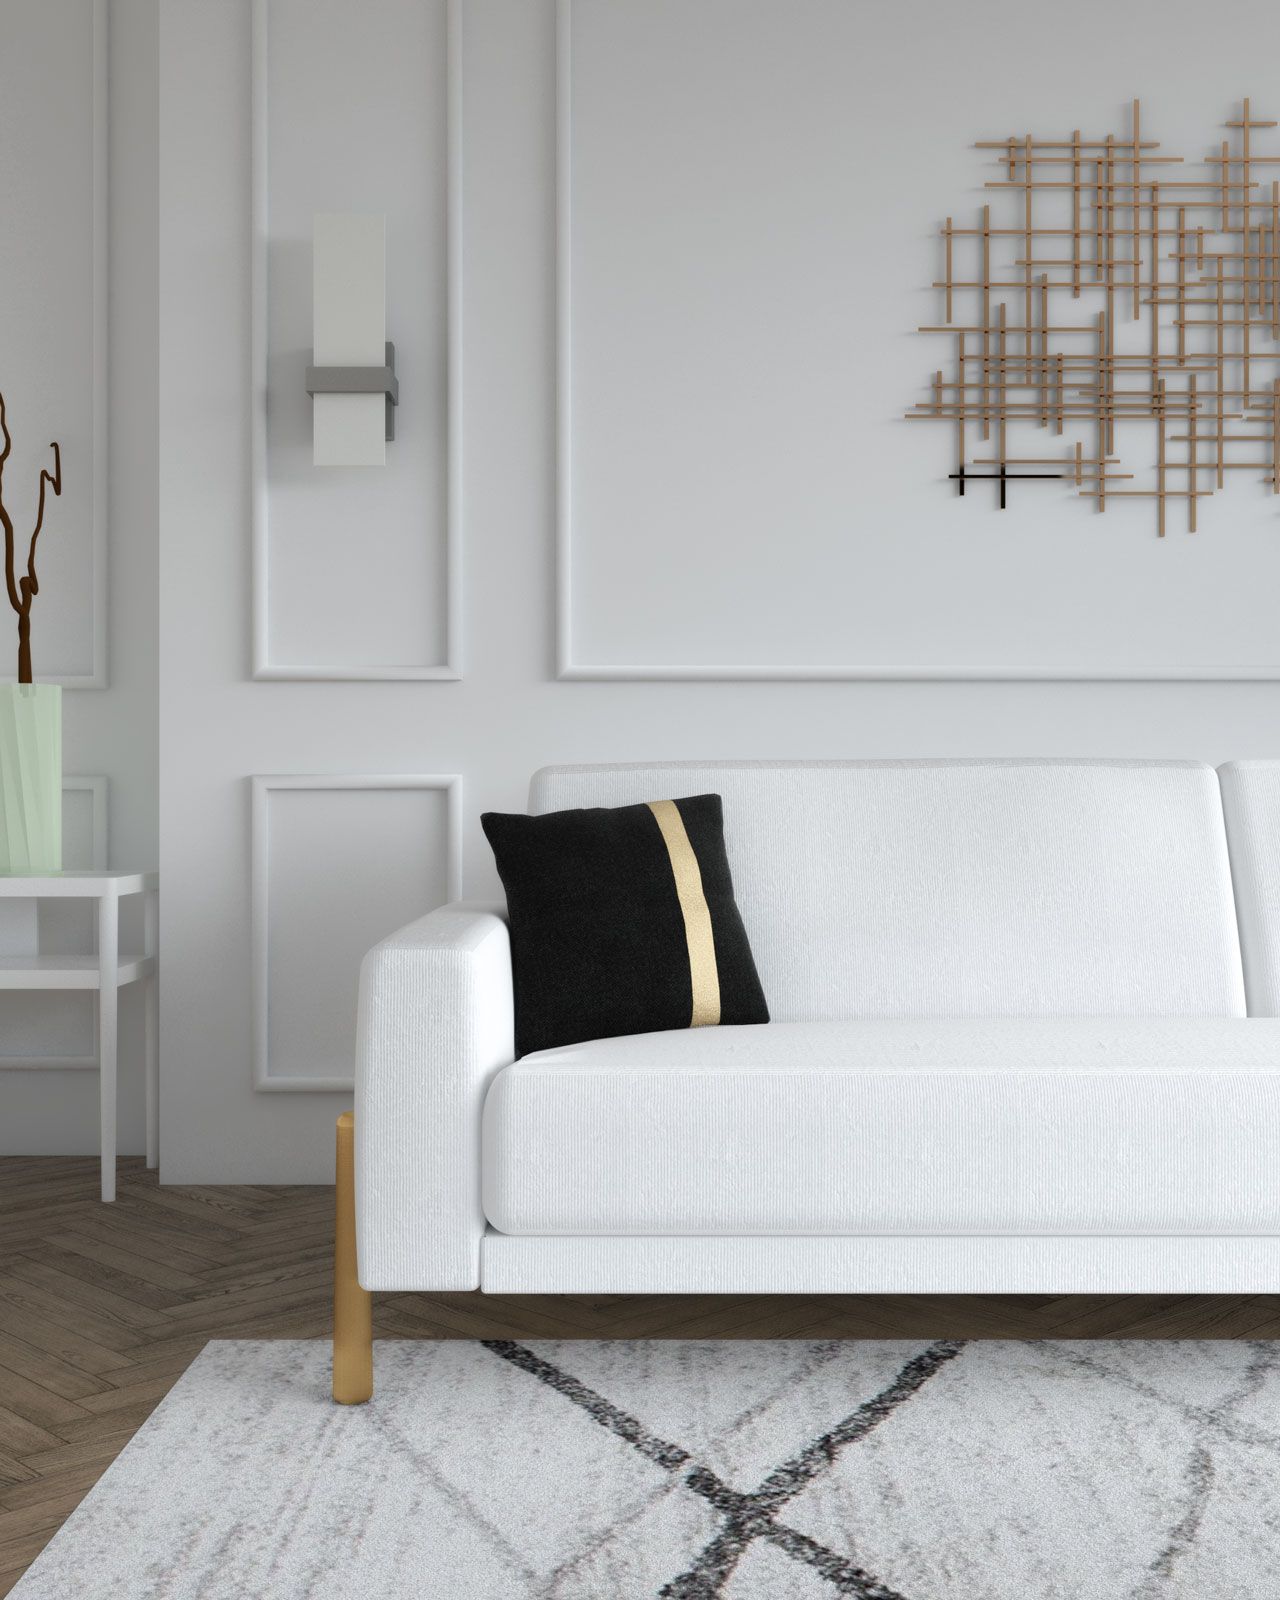 White sofa with black and gold decorative pillow